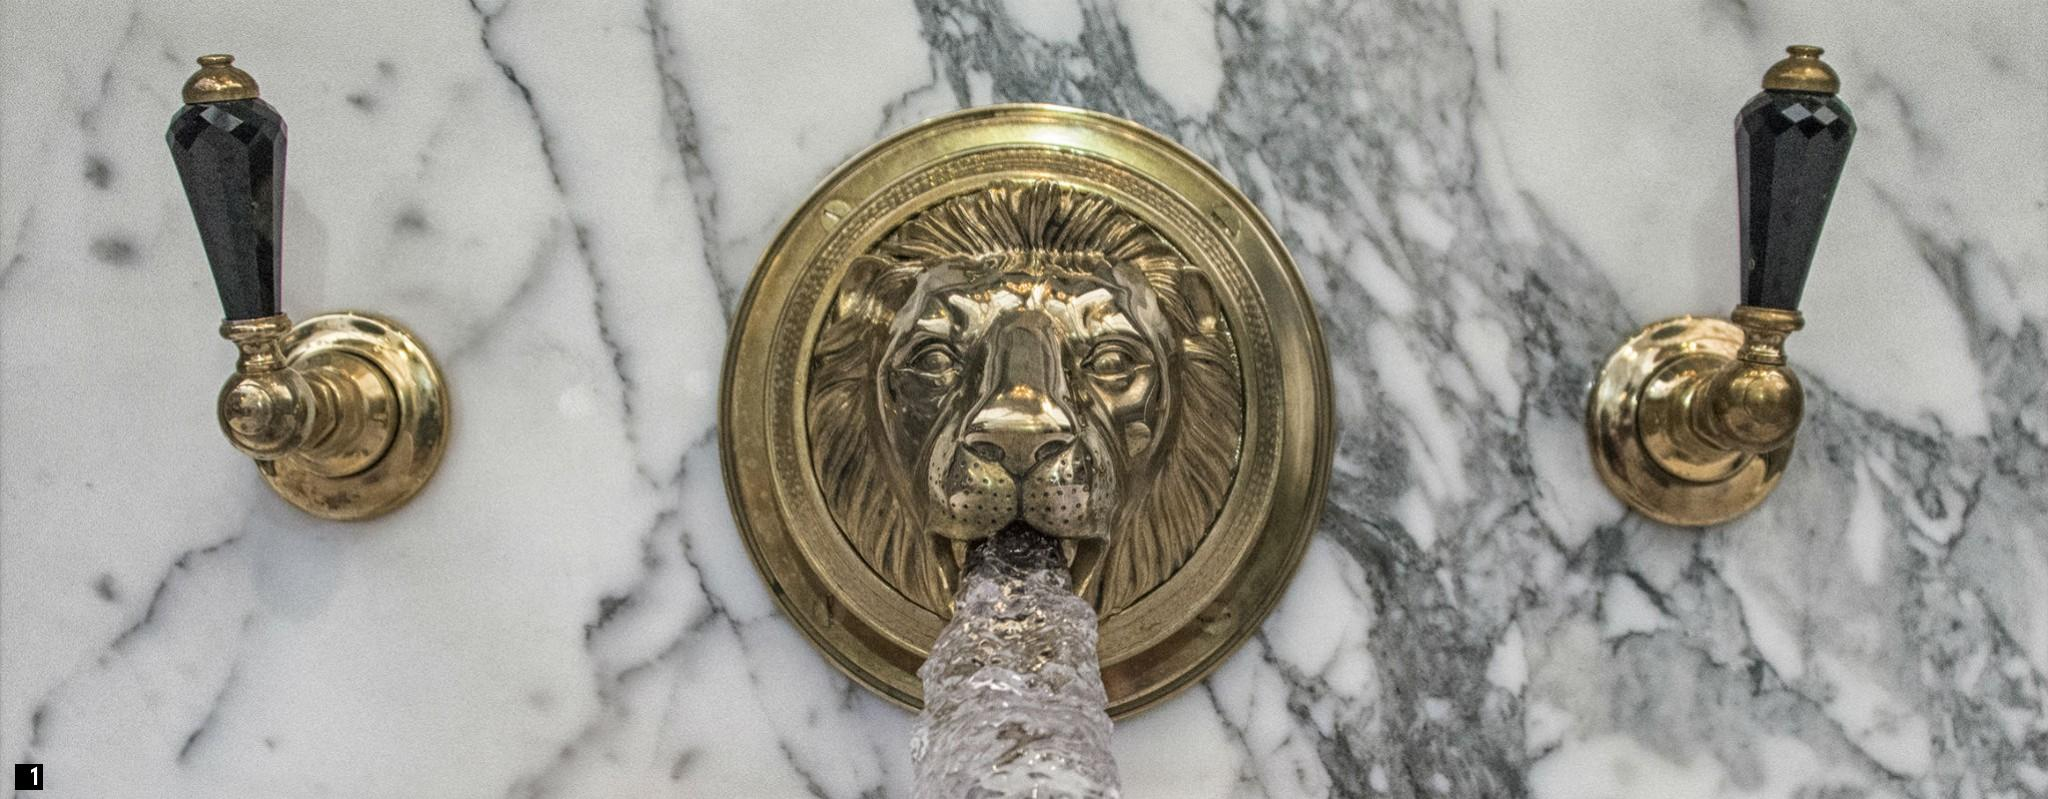 Colorful Old Taps Crest - Bathroom and Shower Ideas - purosion.com